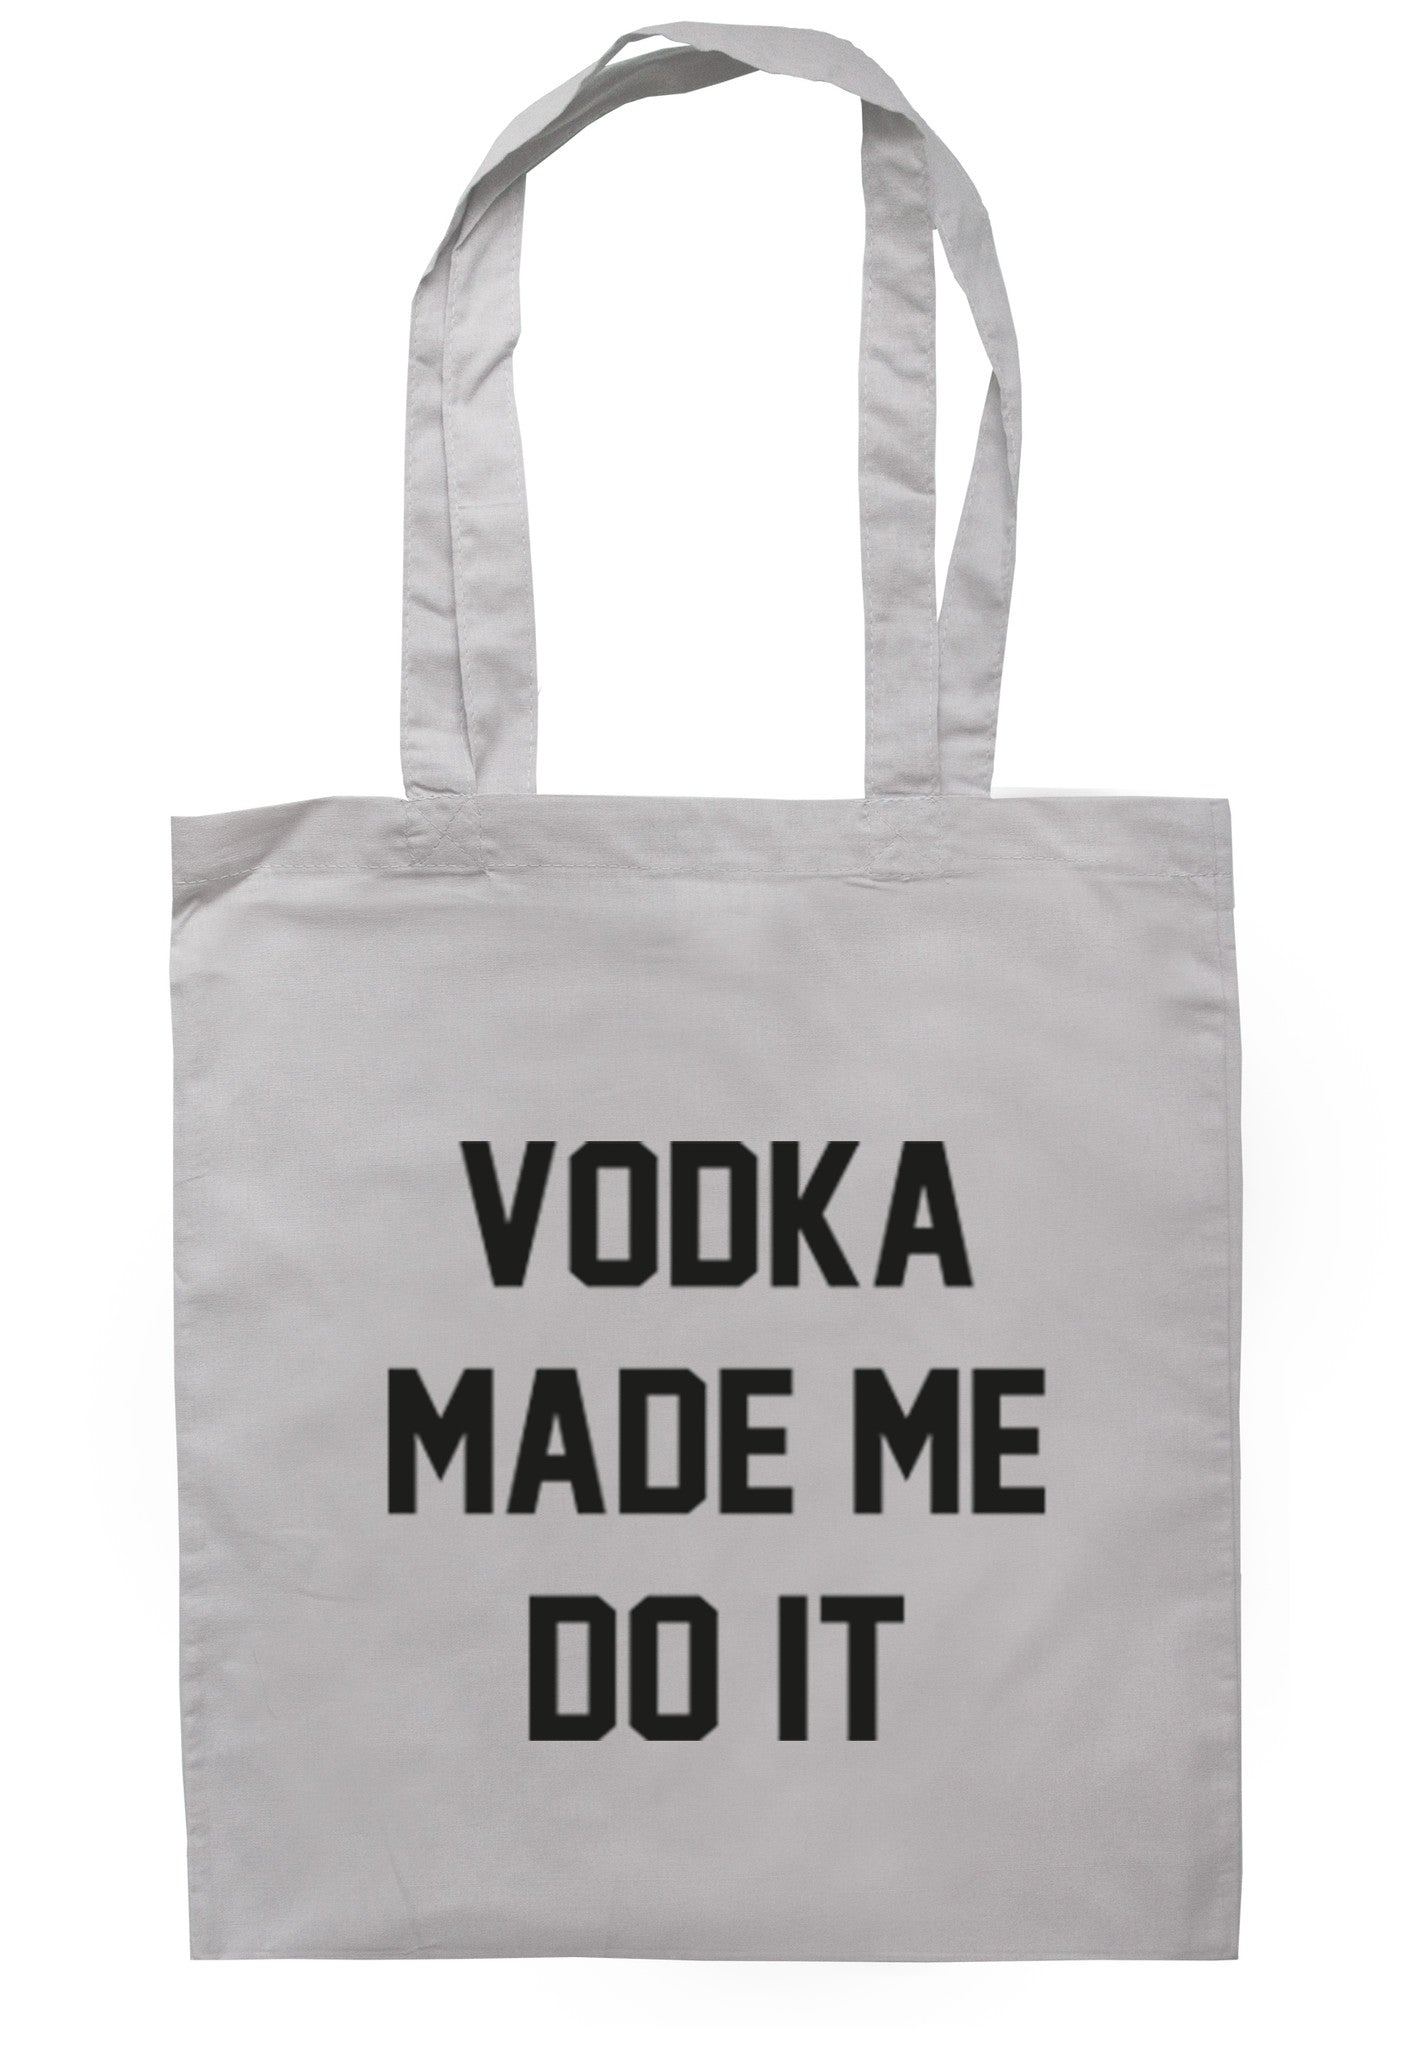 Vodka Made Me Do It Tote Bag TB0022 - Illustrated Identity Ltd.